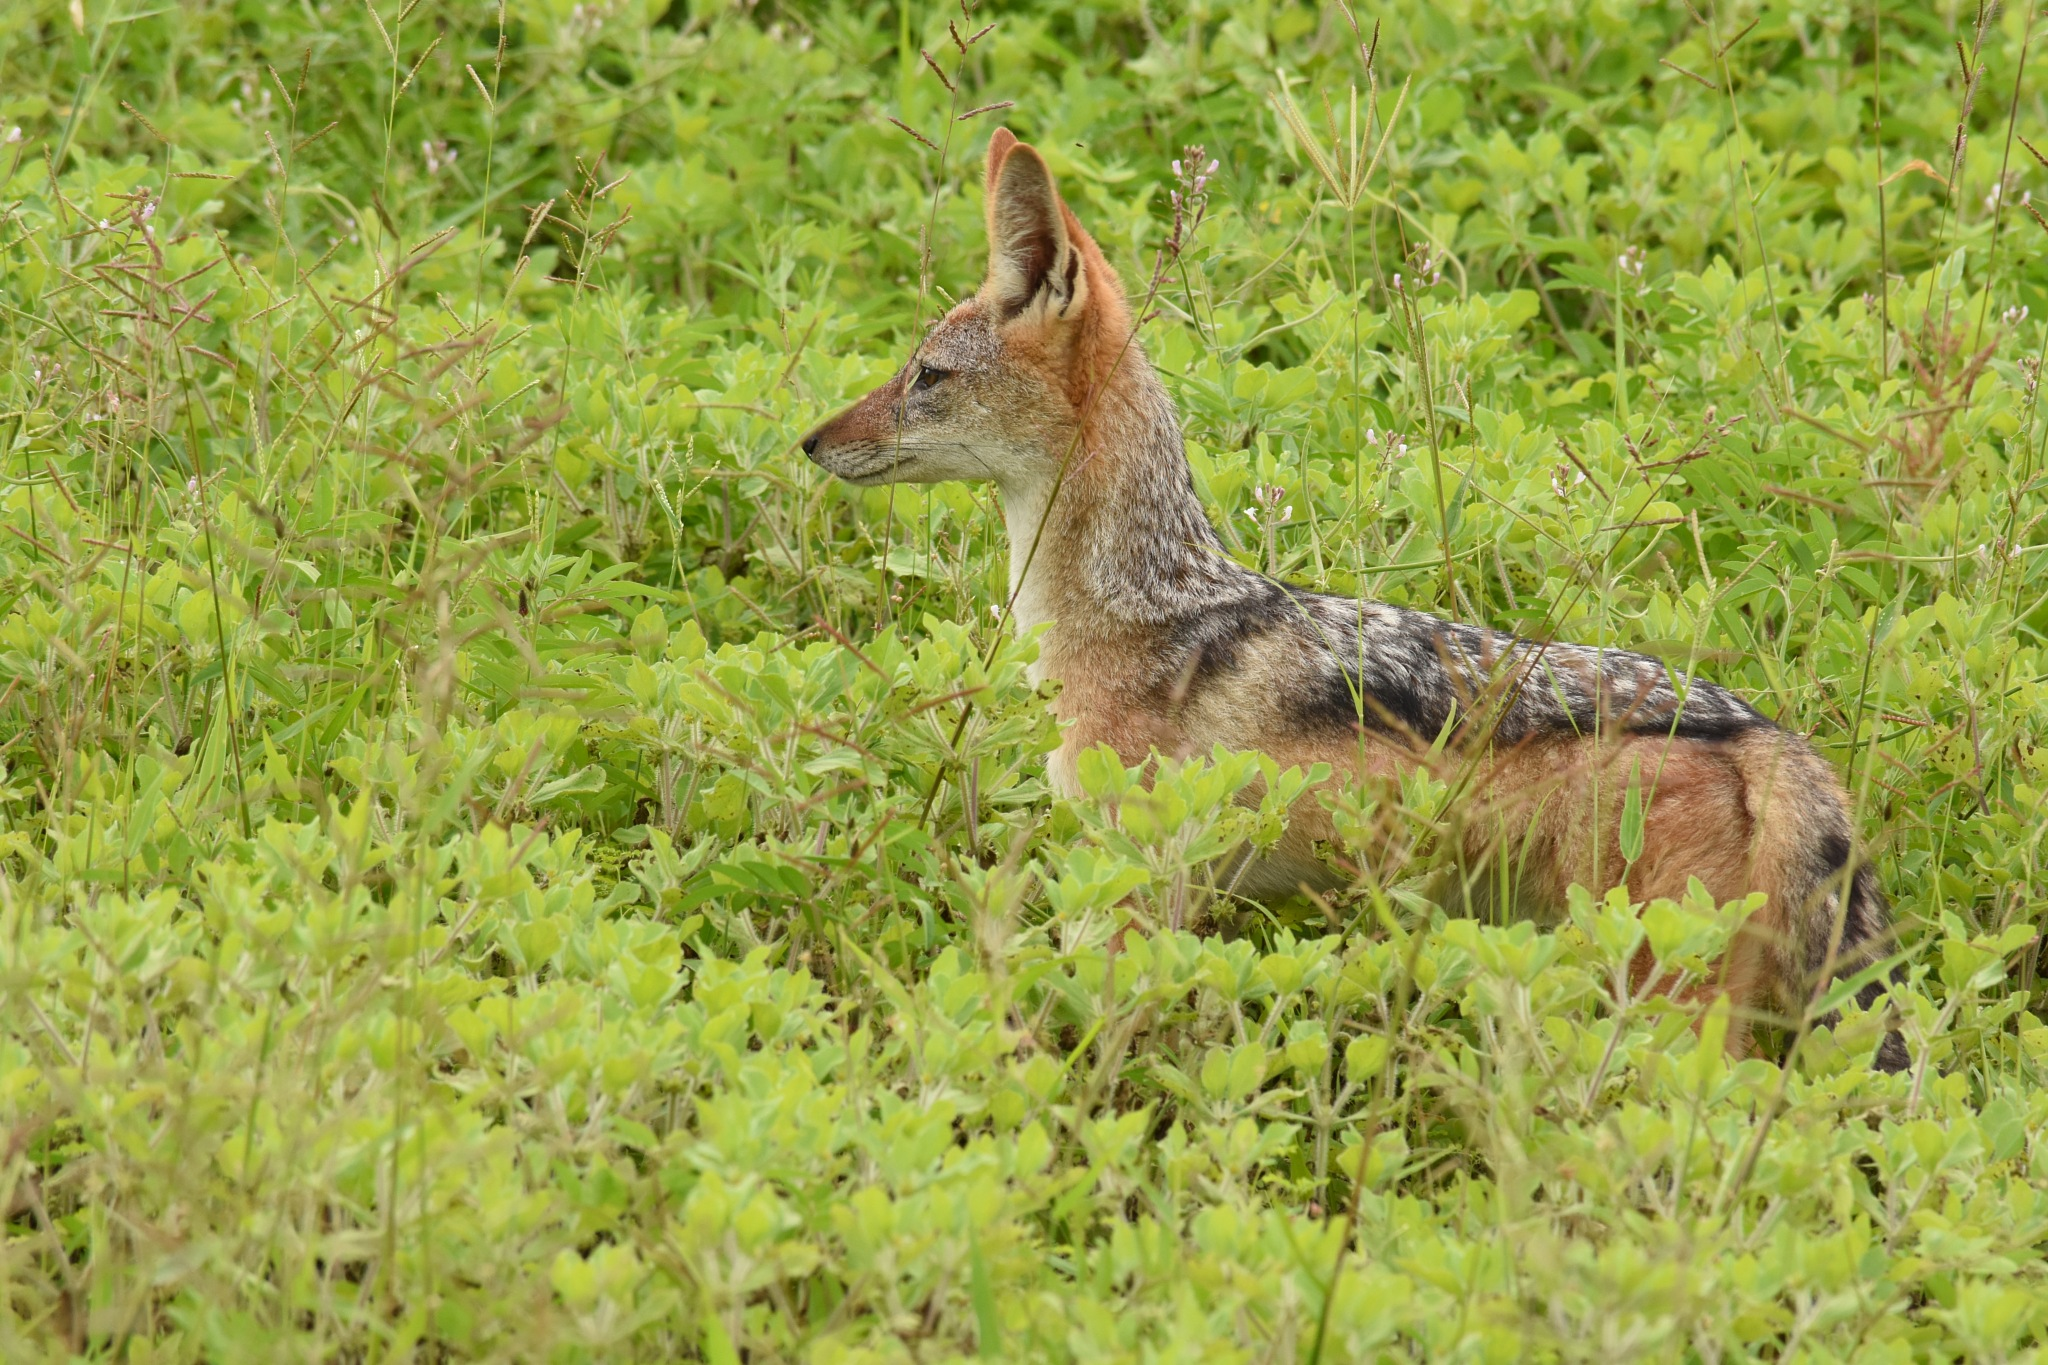 The jackal watches and waits by LydiaJeanMay